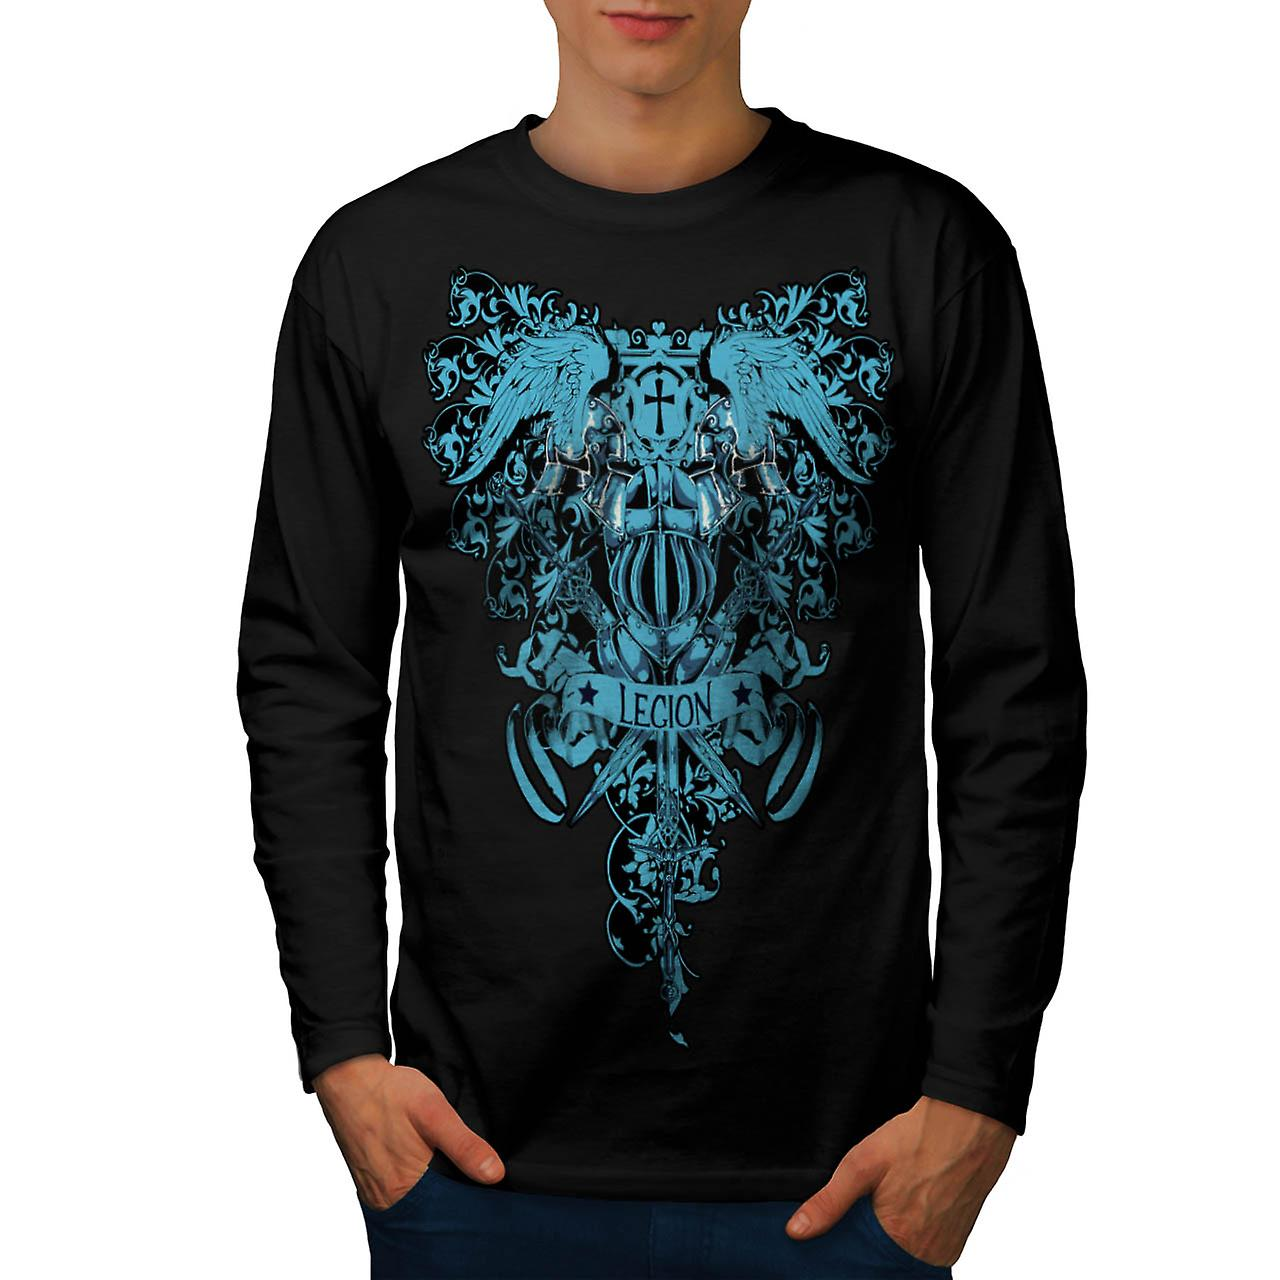 Kingdom Legion Cross Dead Symbol Men Black Long Sleeve T-shirt | Wellcoda